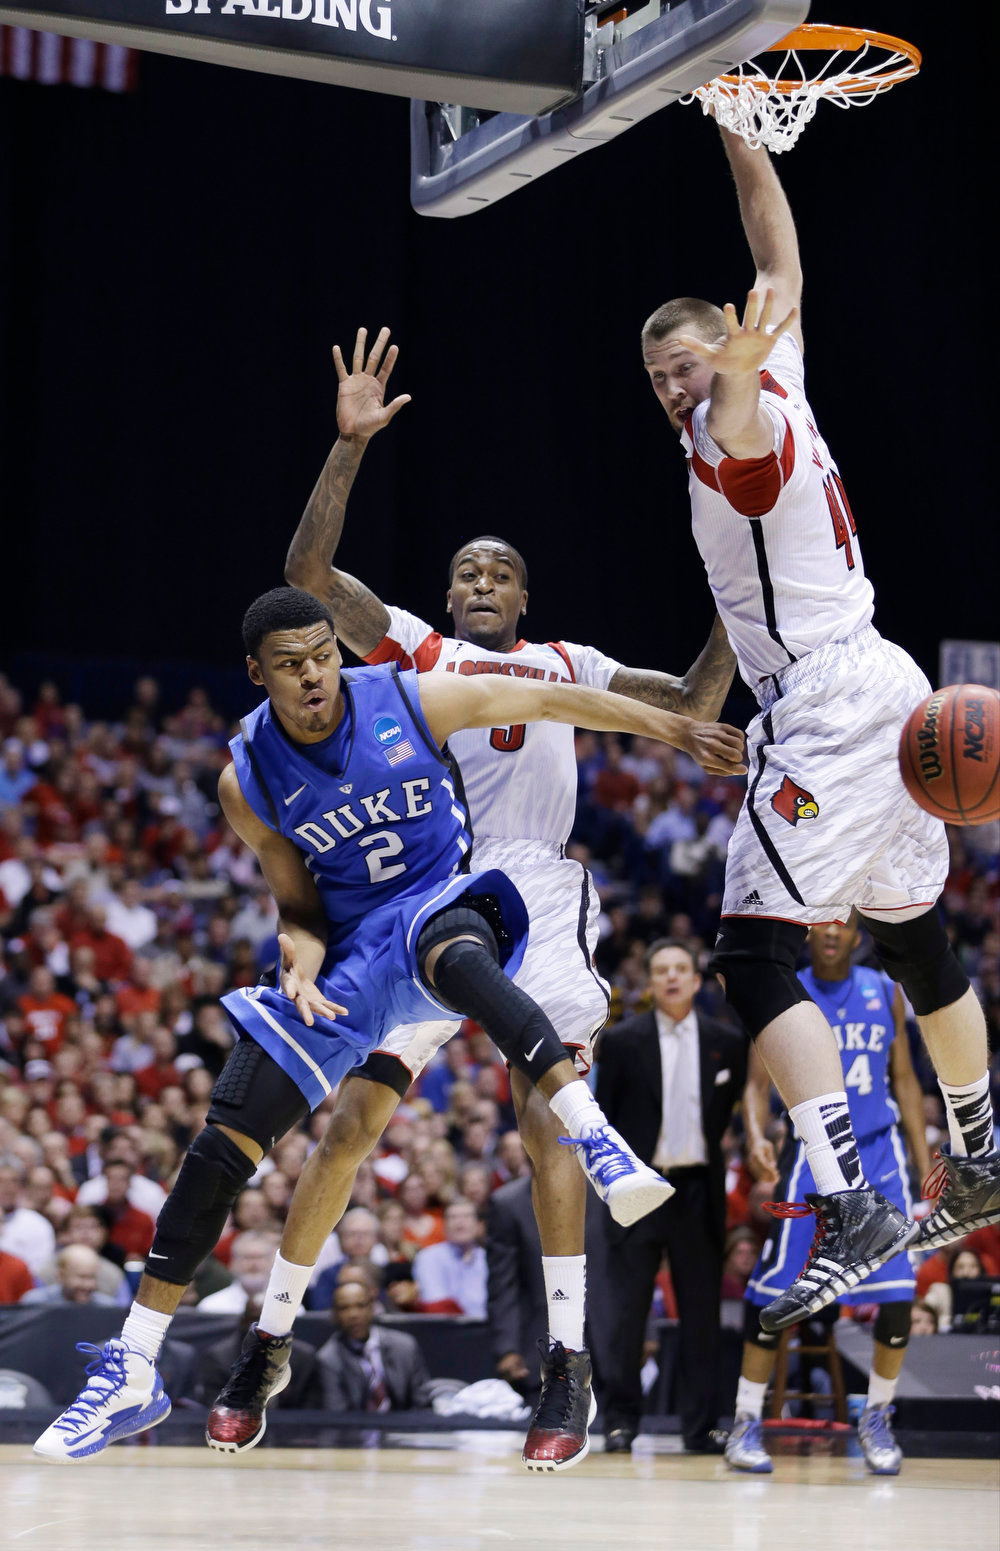 . Duke\'s Quinn Cook (2) passes the ball against Louisville\'s Stephan Van Treese (44) and Kevin Ware (5) during the first half of the Midwest Regional final in the NCAA college basketball tournament, Sunday, March 31, 2013, in Indianapolis. (AP Photo/Darron Cummings)